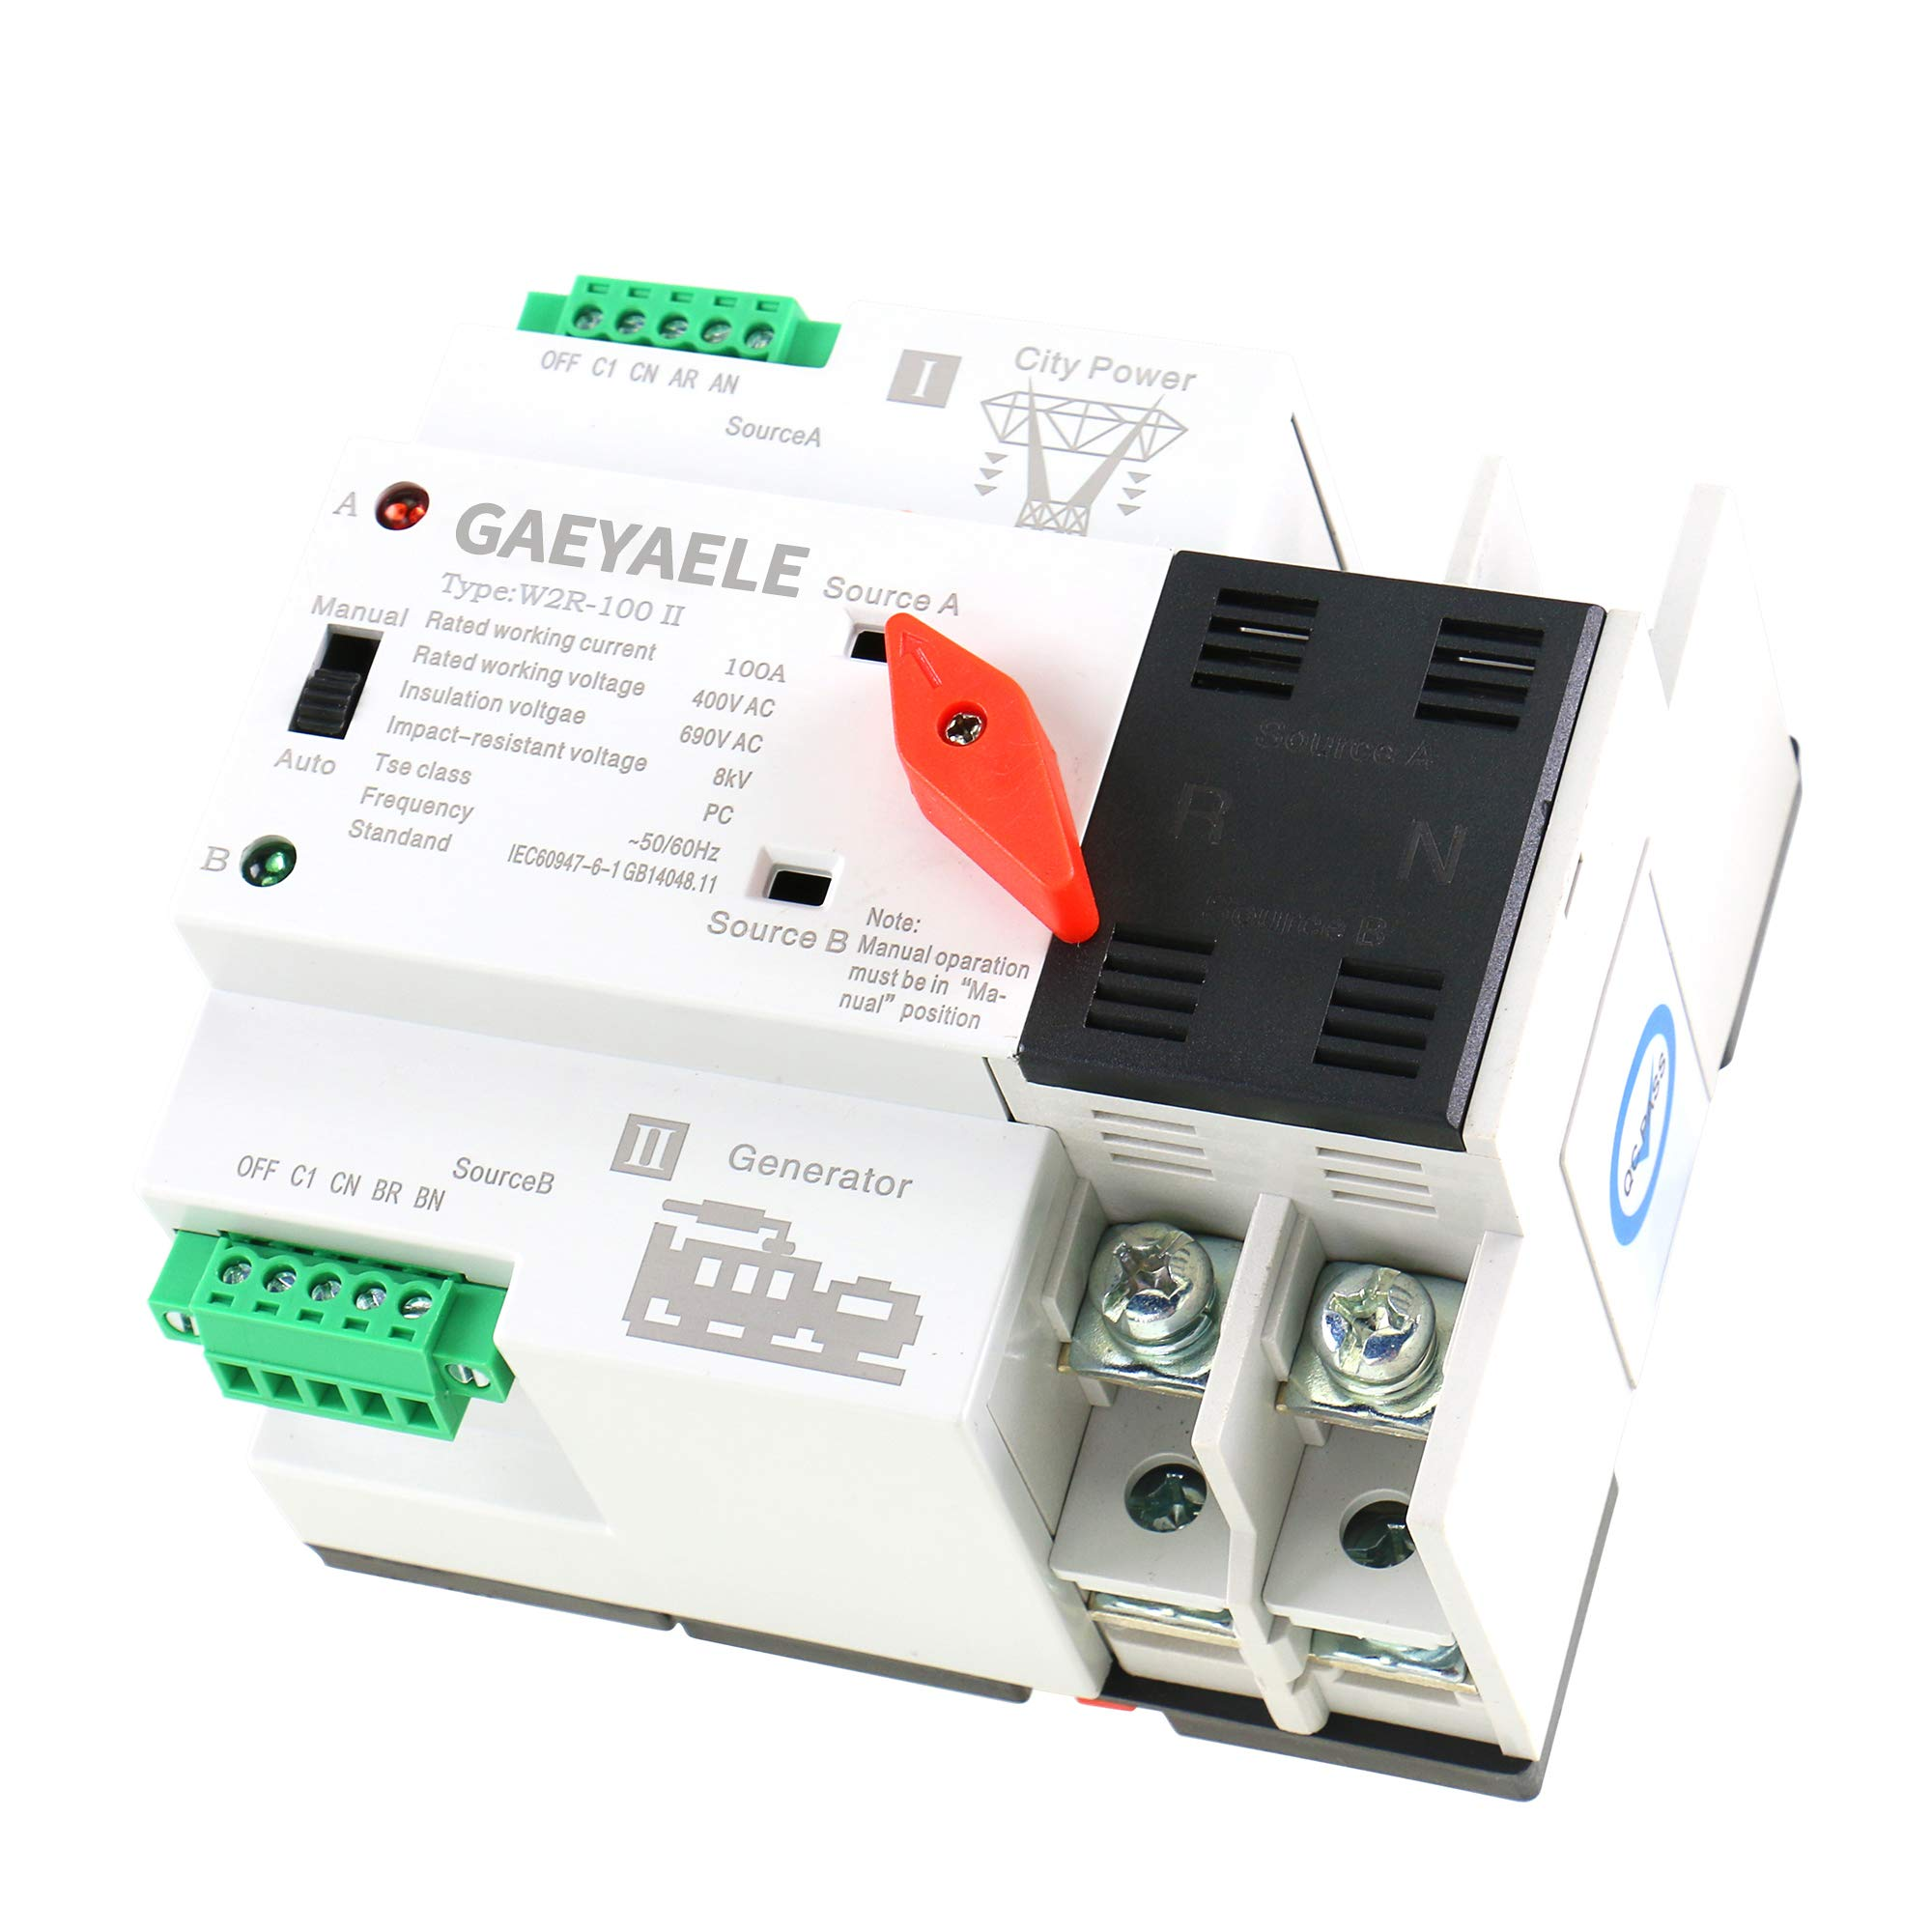 GAEYAELE W2R Mini ATS 2P Automatic Transfer Switch Electrical Selector Switches Dual Power Switch Din Rail Type ATS 63A 100A (W2R 2P 100A) by GAEYAELE